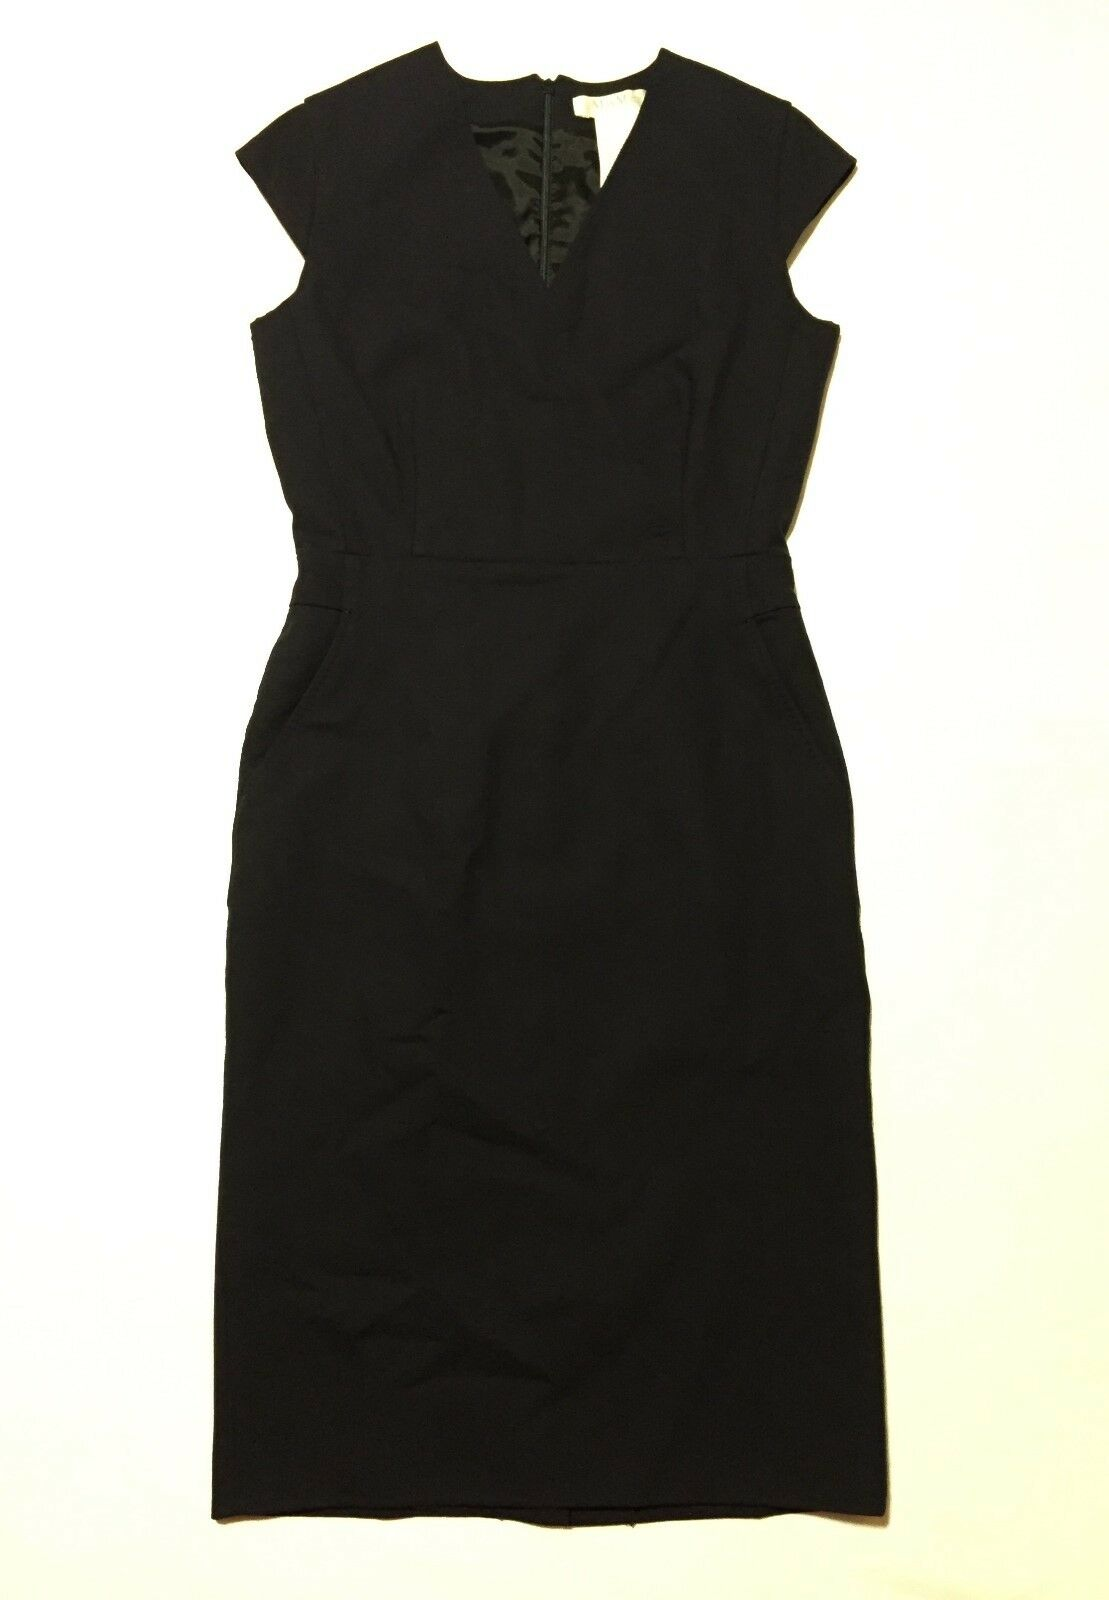 Max Mara Navy Fully Lined Sleeveless Woherren Sheath Dress Virgin Wool Blend Sz 6